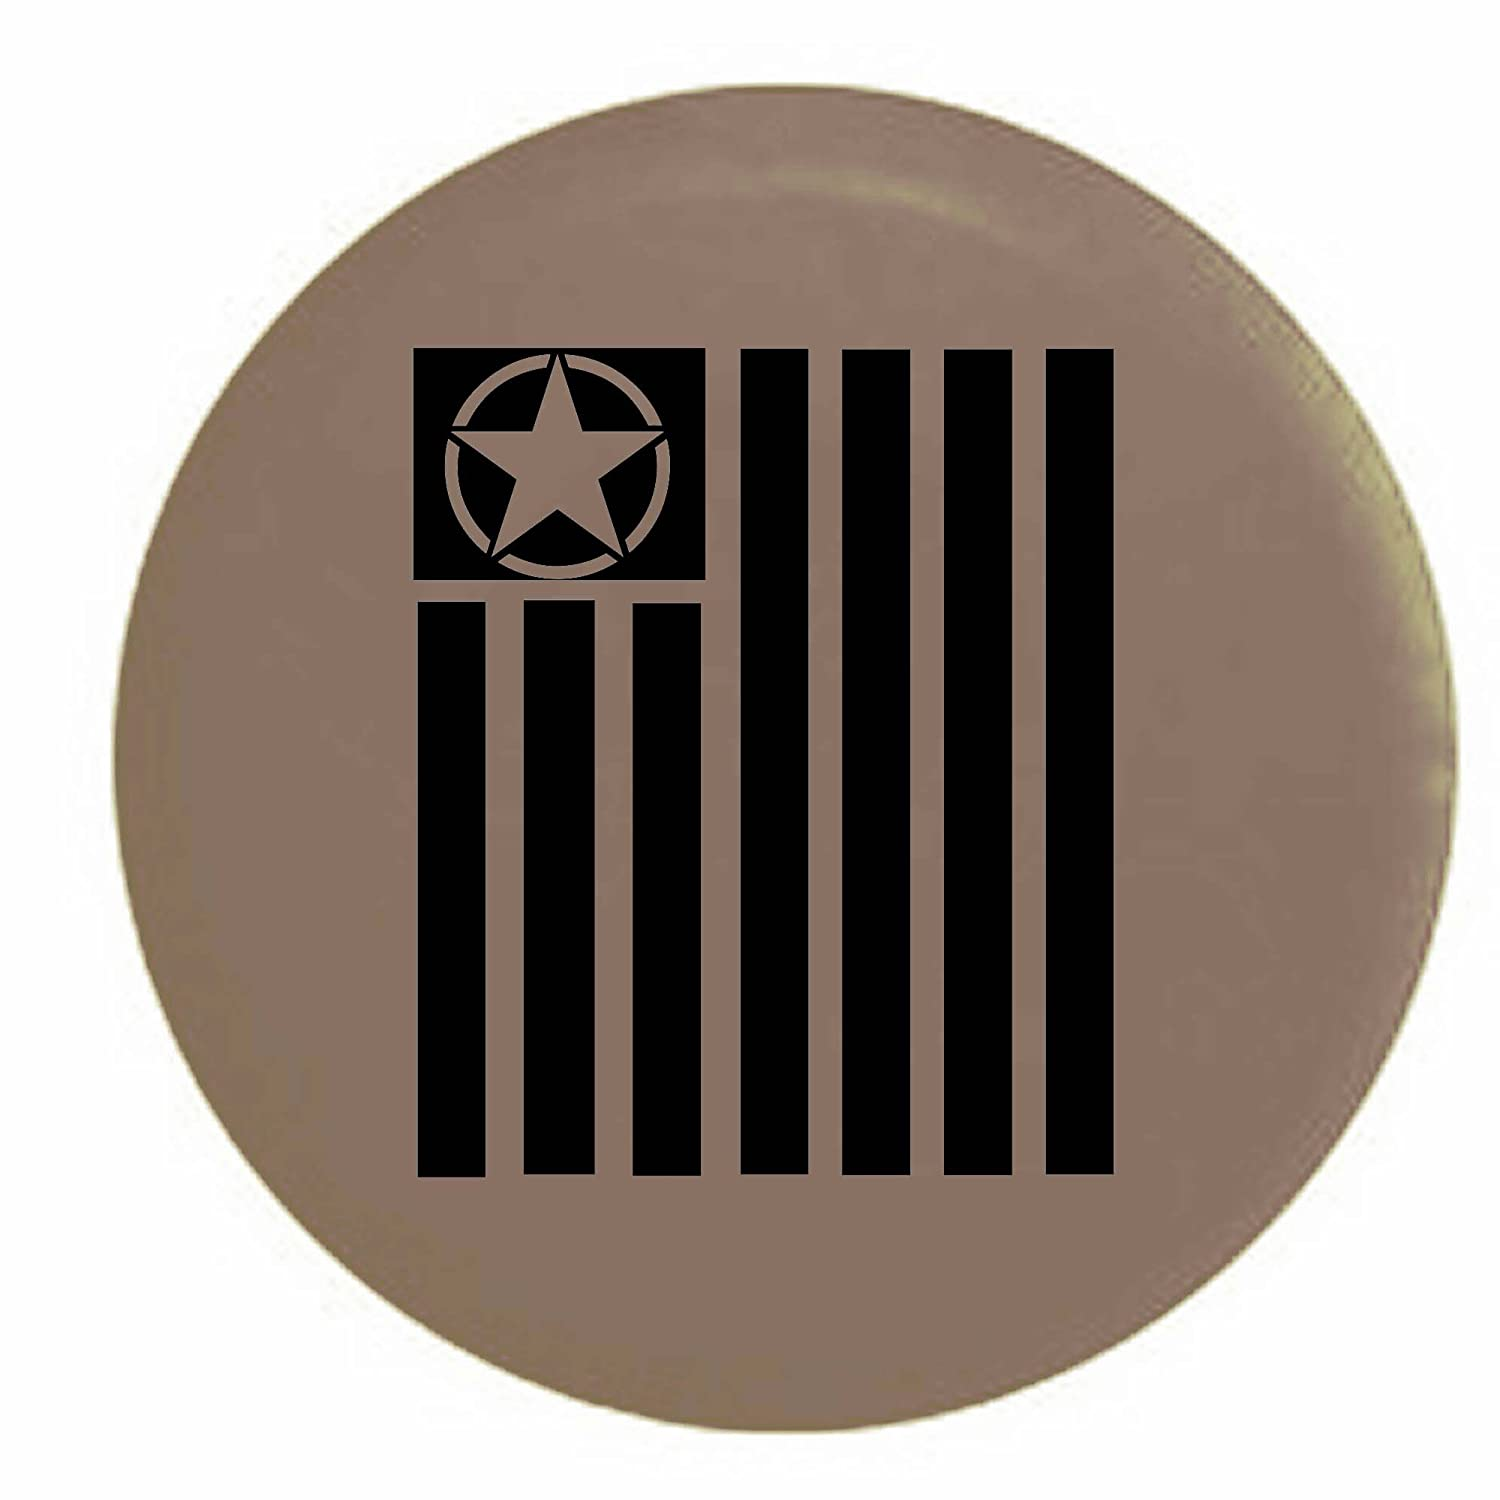 Tactical Military Star Vertical Freedom Flag Spare Tire Cover OEM Vinyl Black 32 in Pike Outdoors